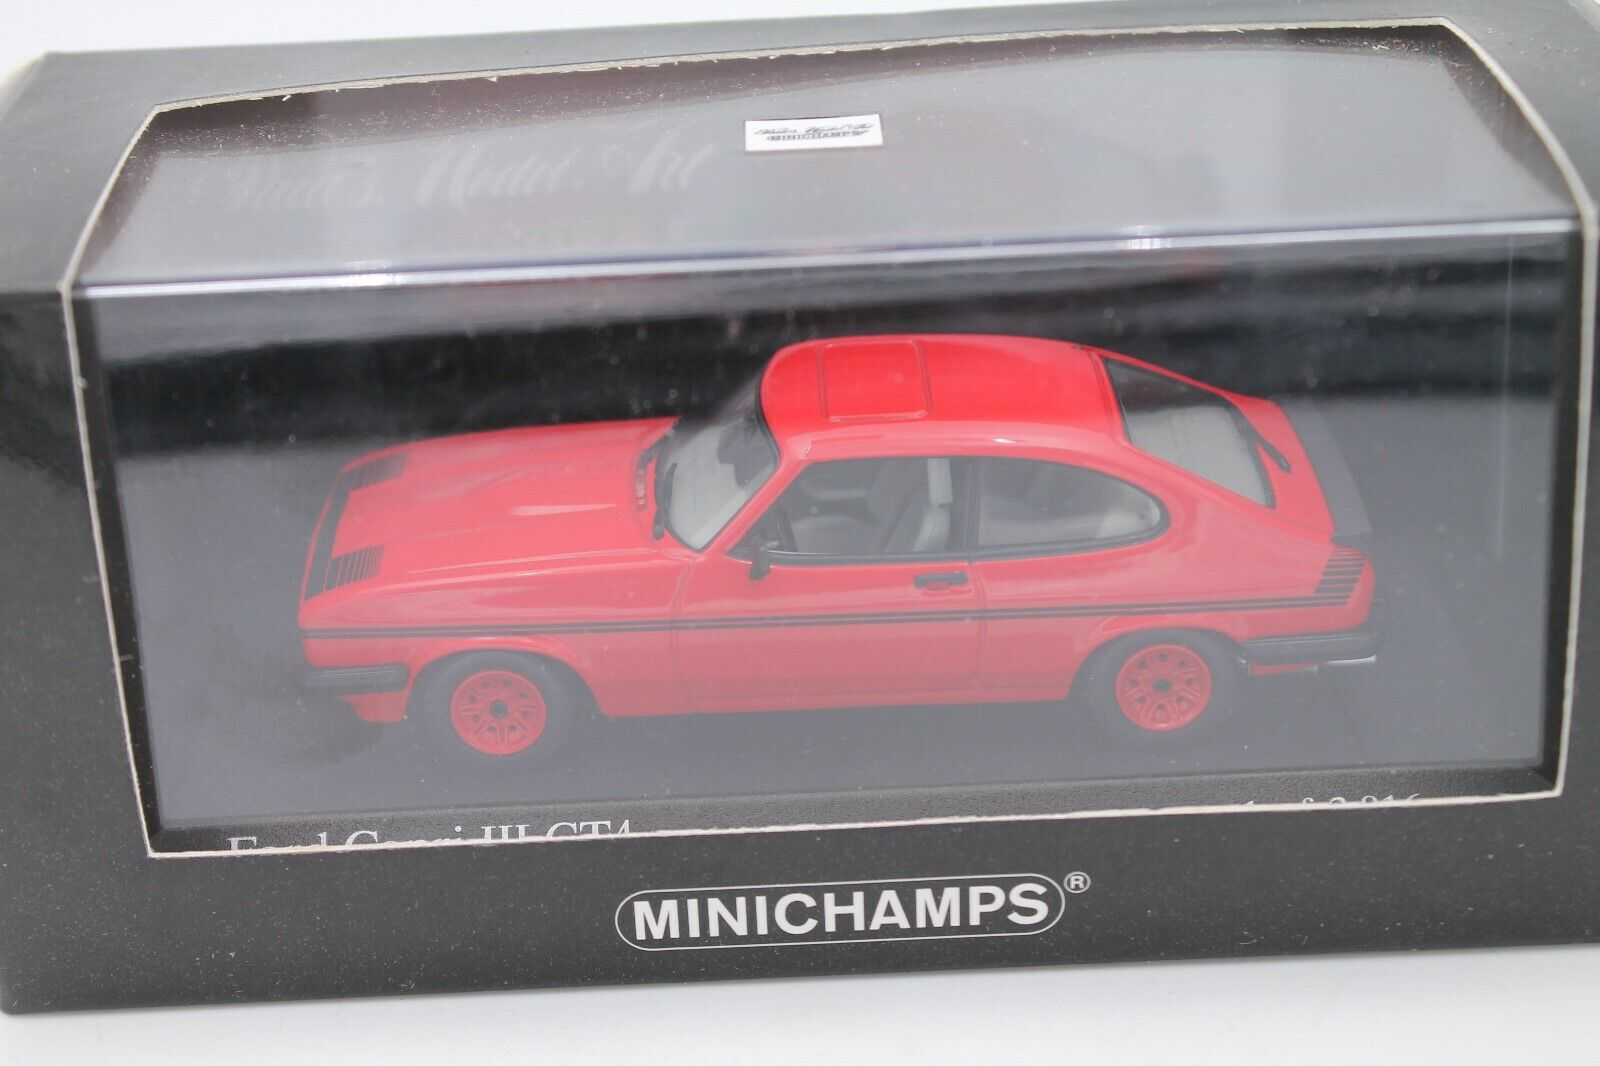 Minichamps * FORD CAPRI gt4 * 1982 * RED * LIMITED * 1:43 * OVP